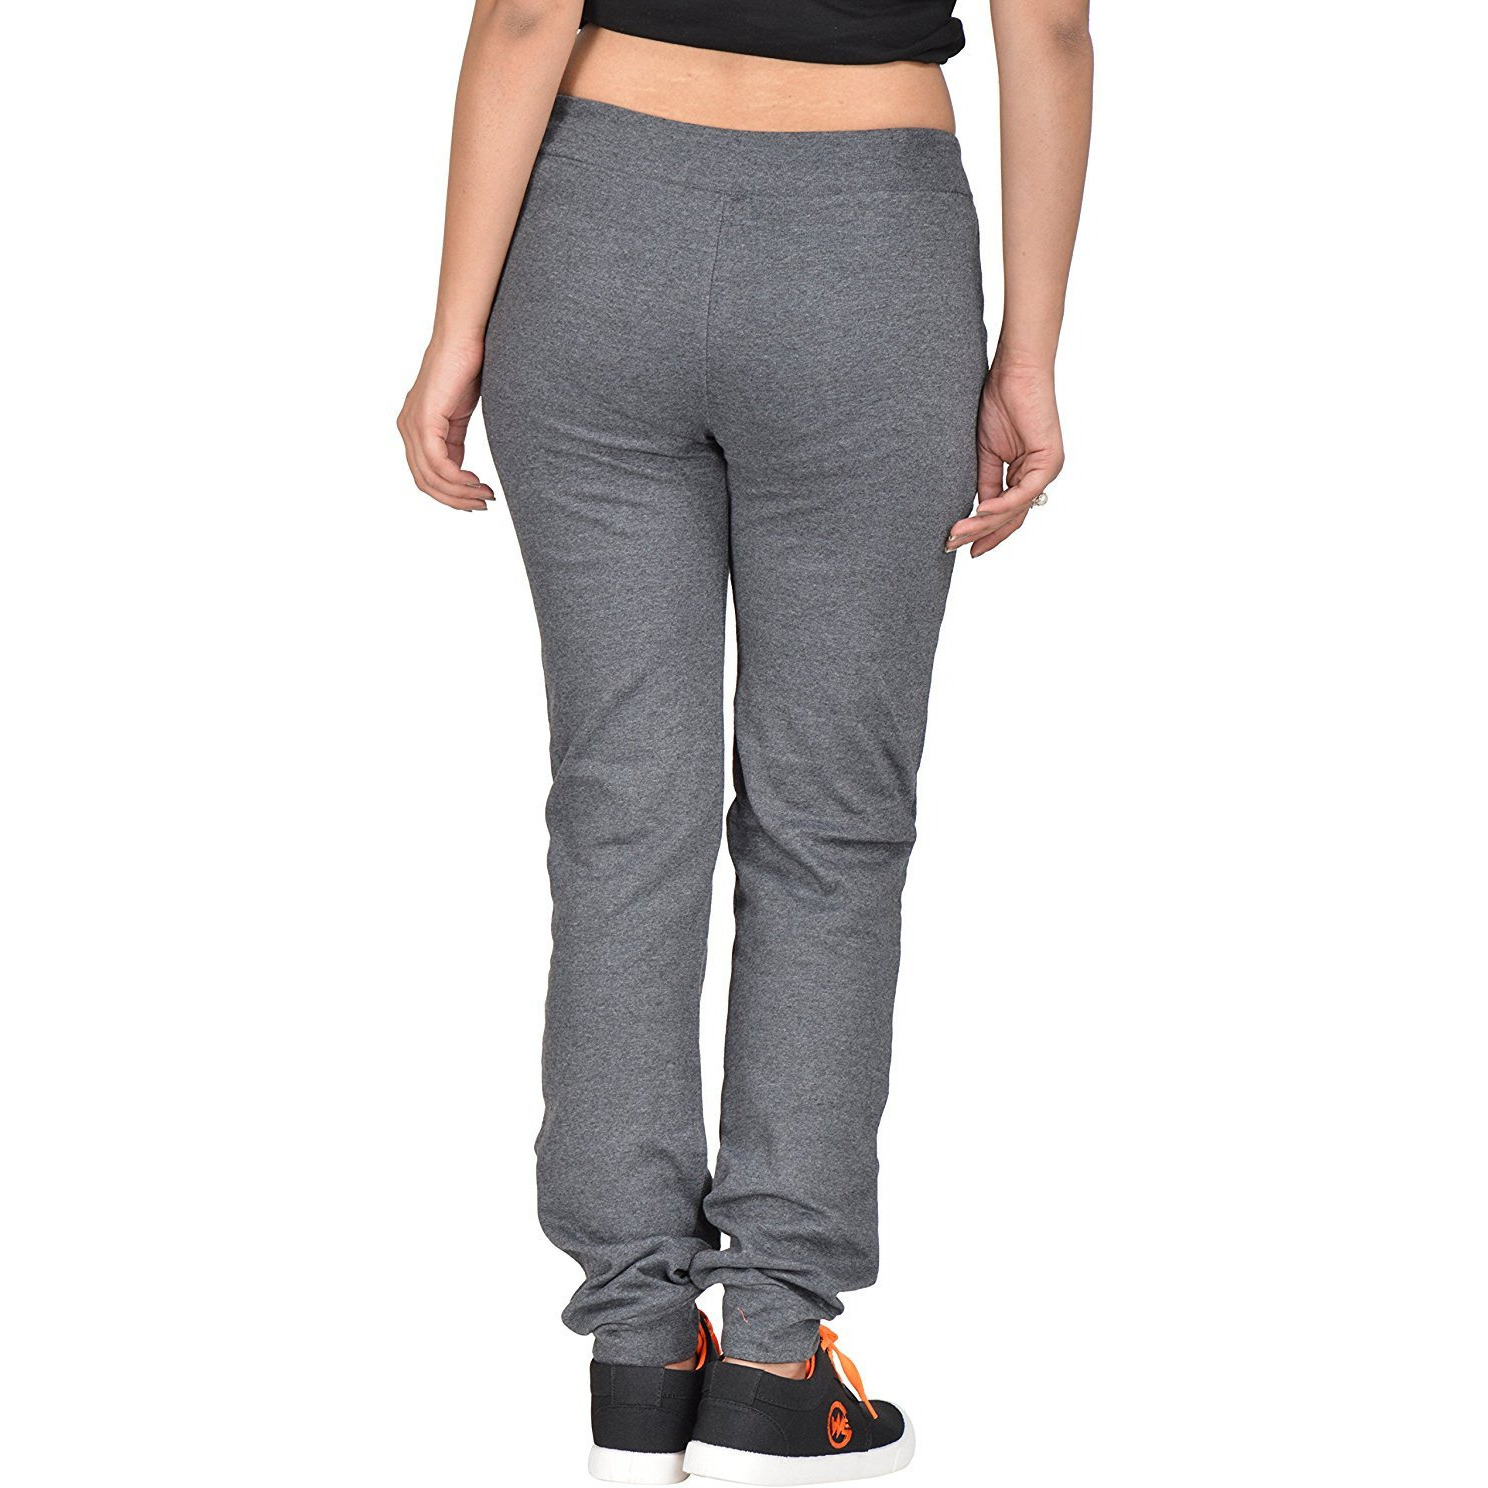 Fashion Women Cotton Hosiery Charcoal Grey Plain Melange Joggers Pants (Size-L)